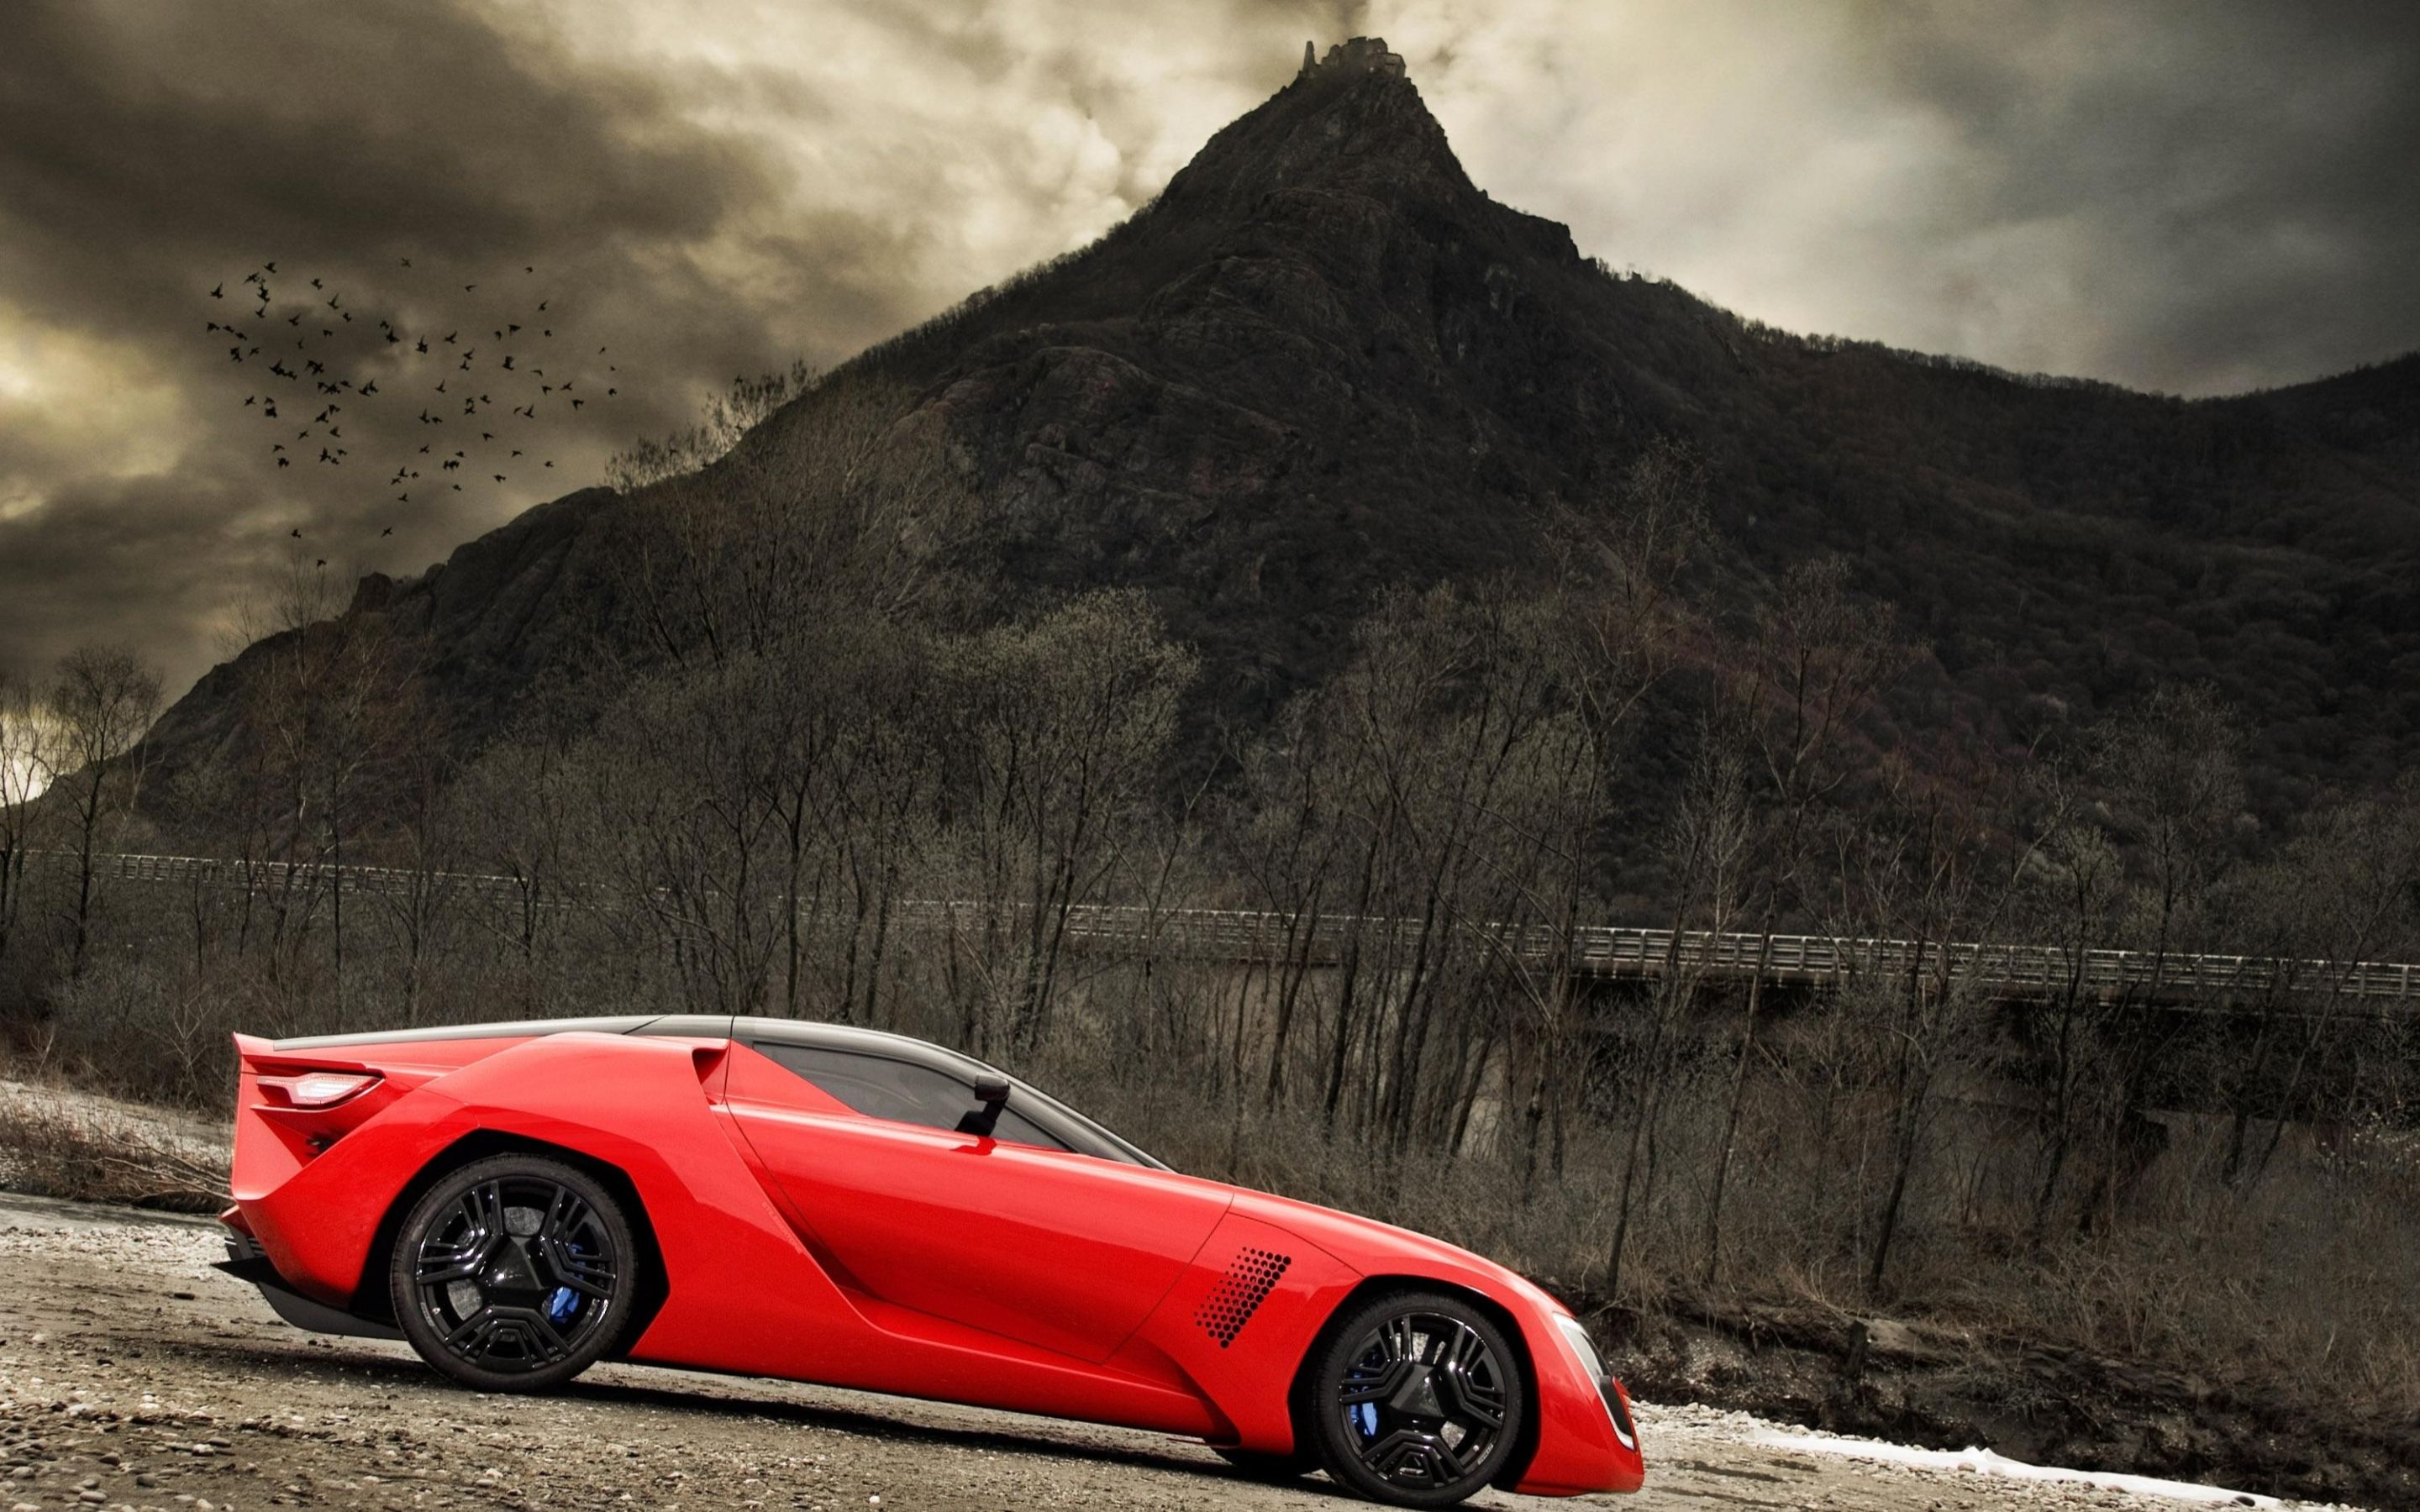 Best Wallpaper Mountain Car - Car-Wallpaper-For-Mac-38-2880x1800  Picture_402979.jpg